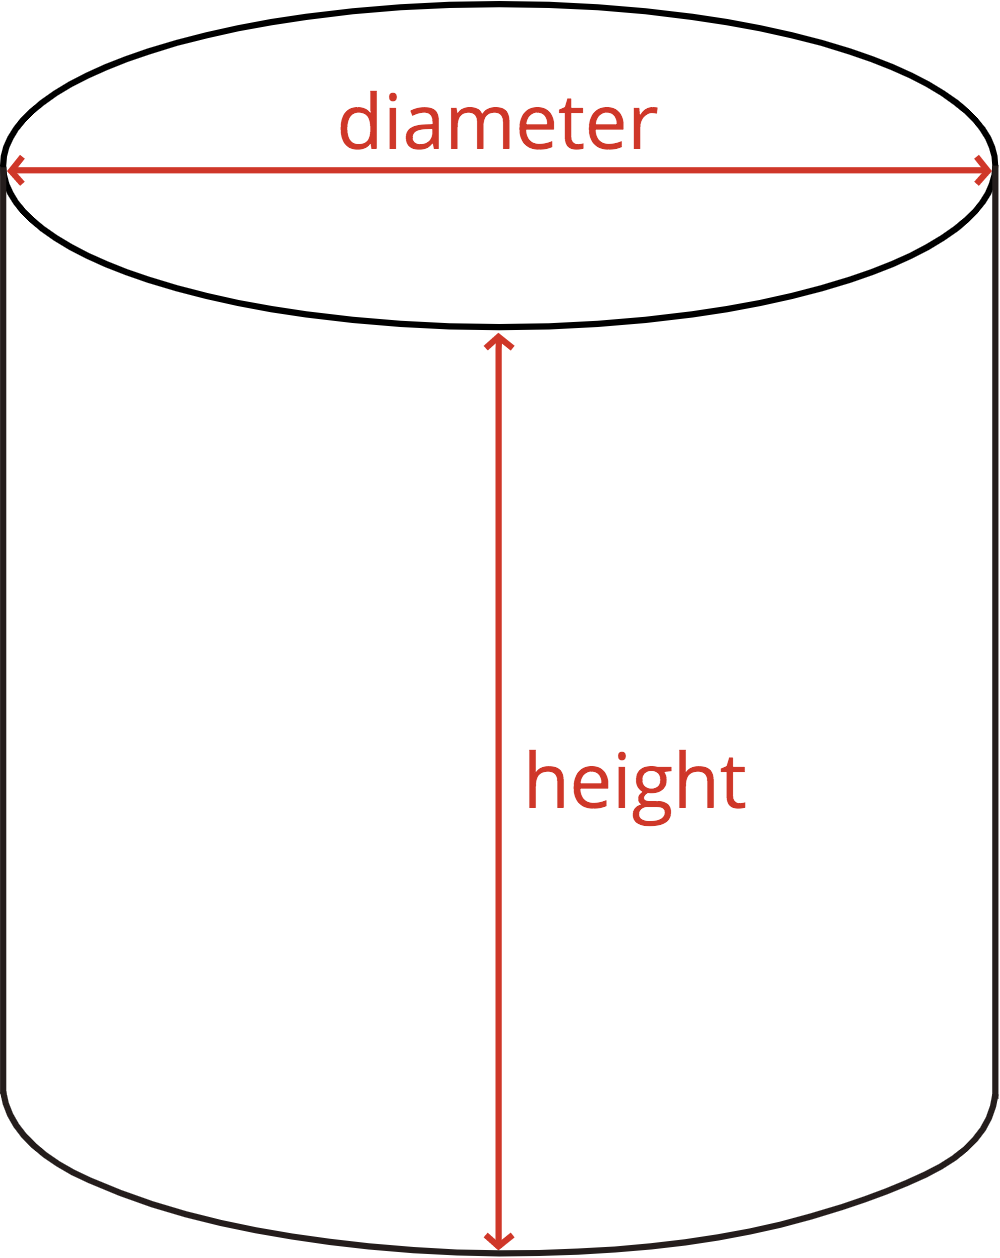 diagram of a concrete column showing the diameter and height dimensions